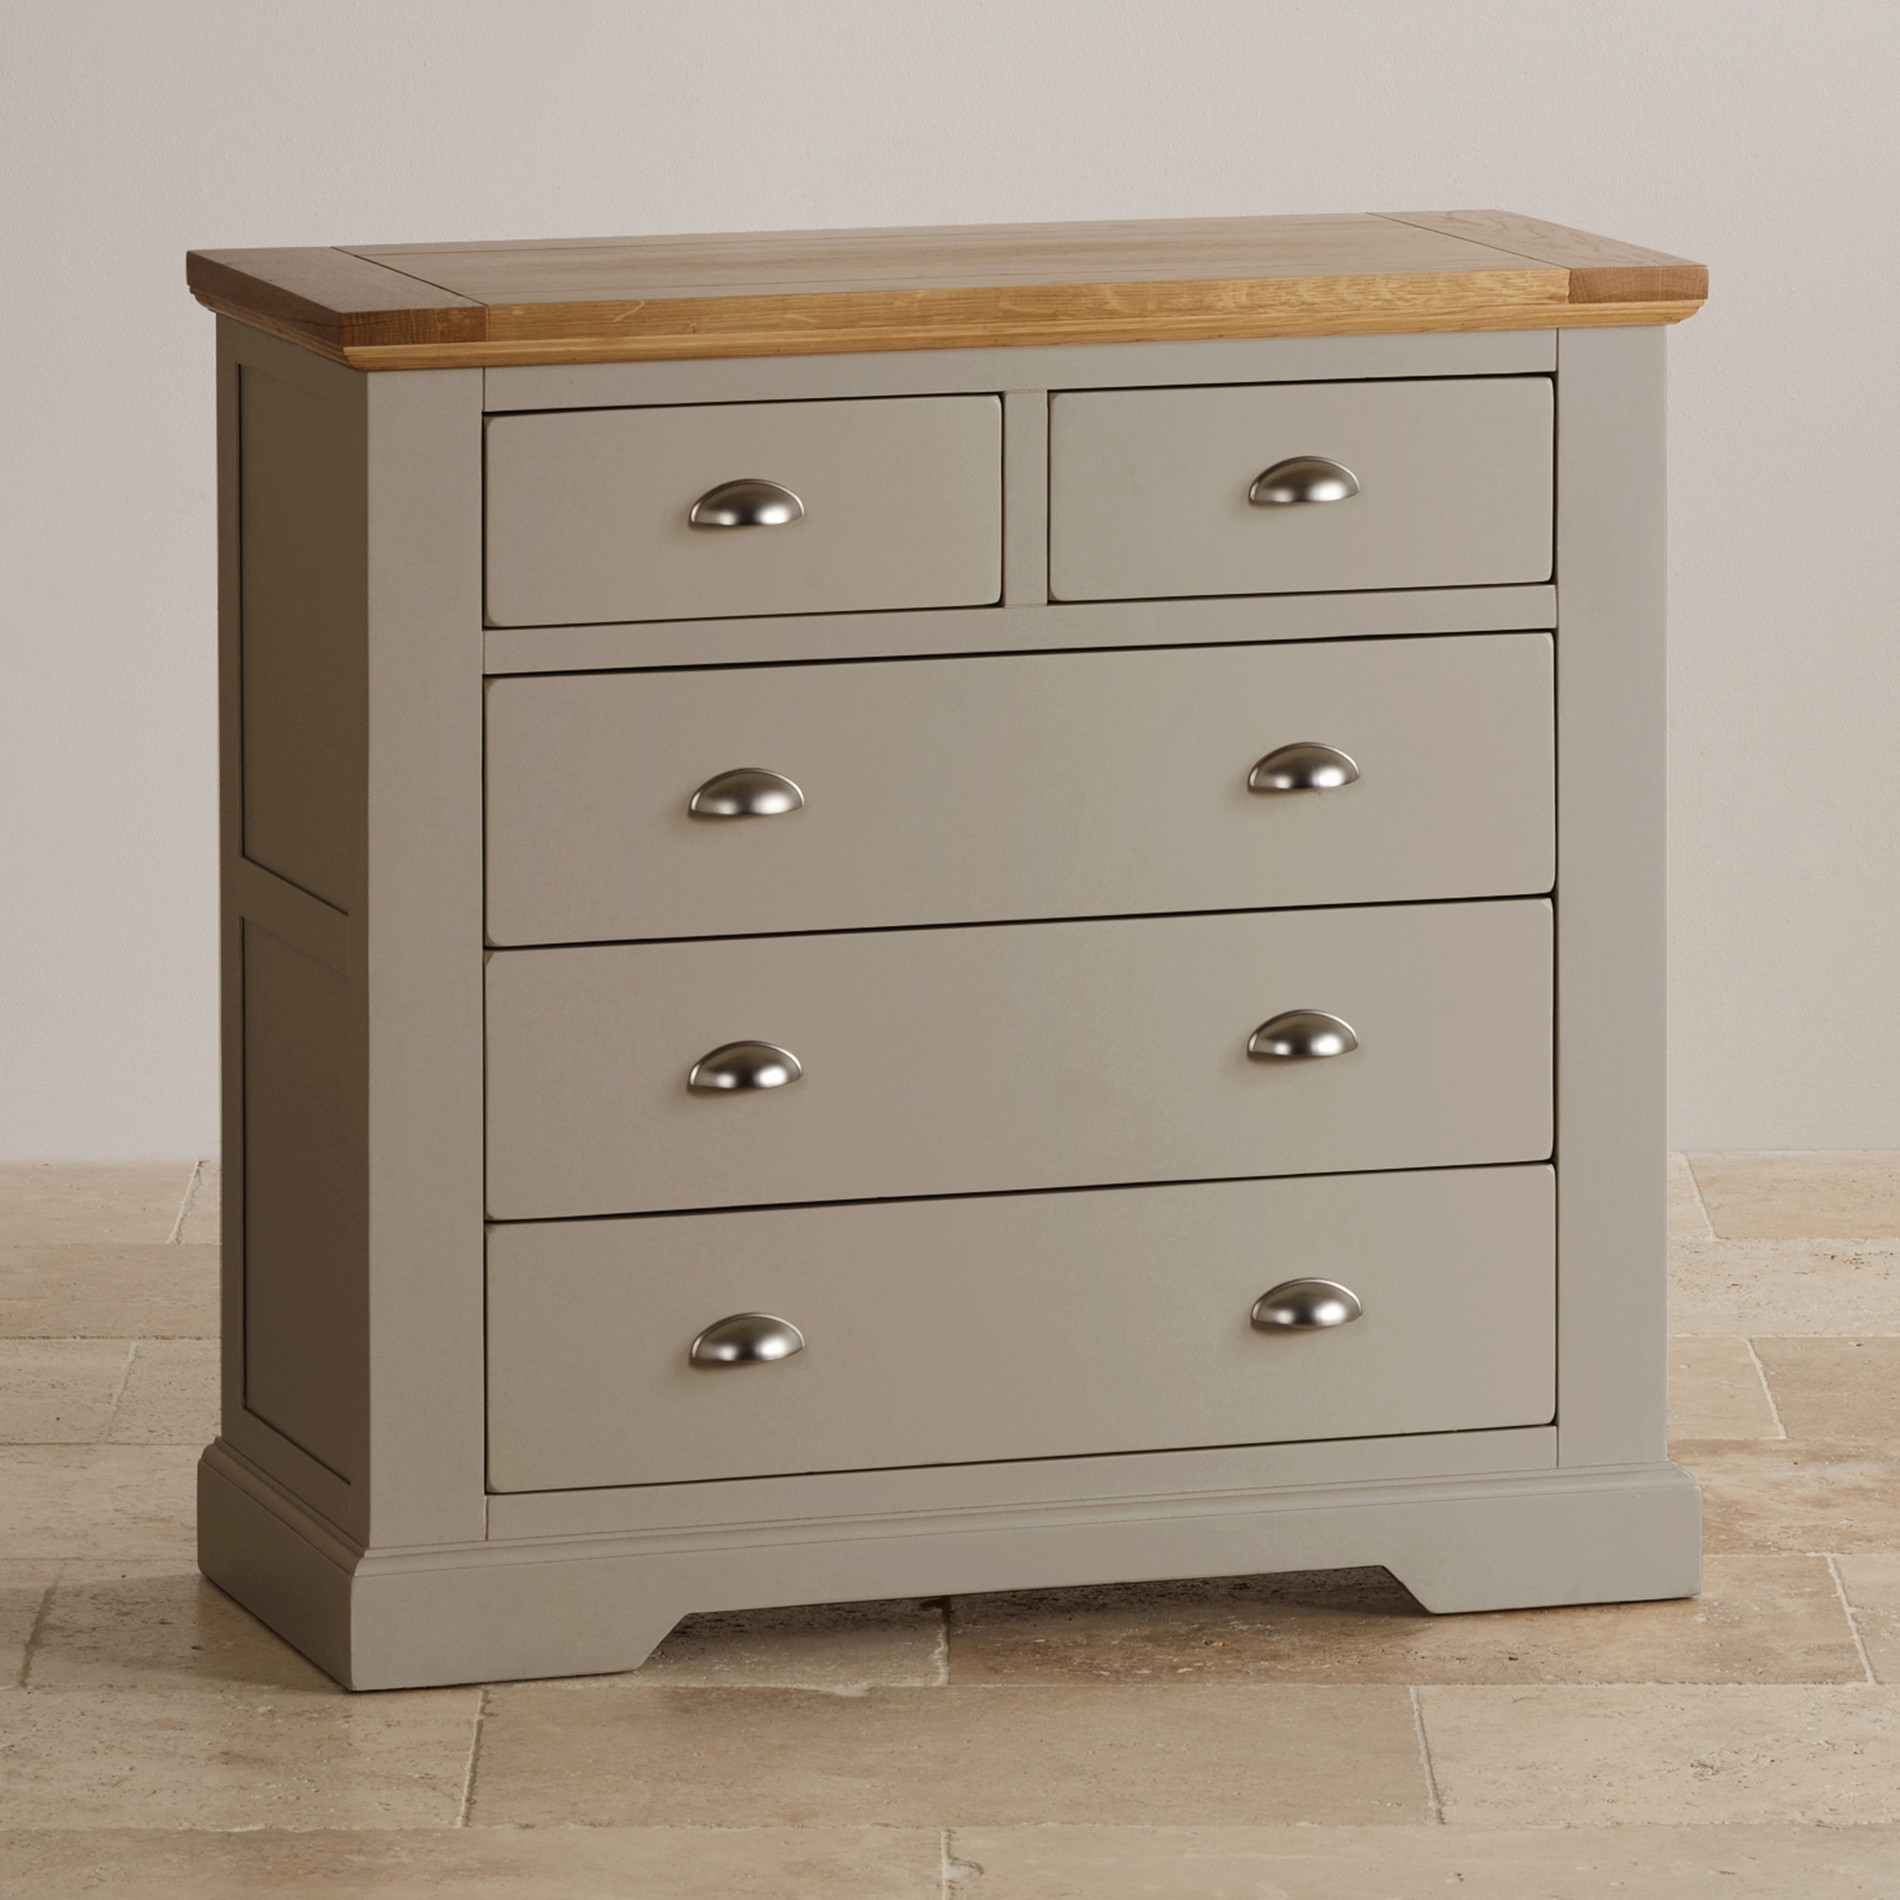 natural oak and light grey painted 2 3 chest of drawers. Black Bedroom Furniture Sets. Home Design Ideas